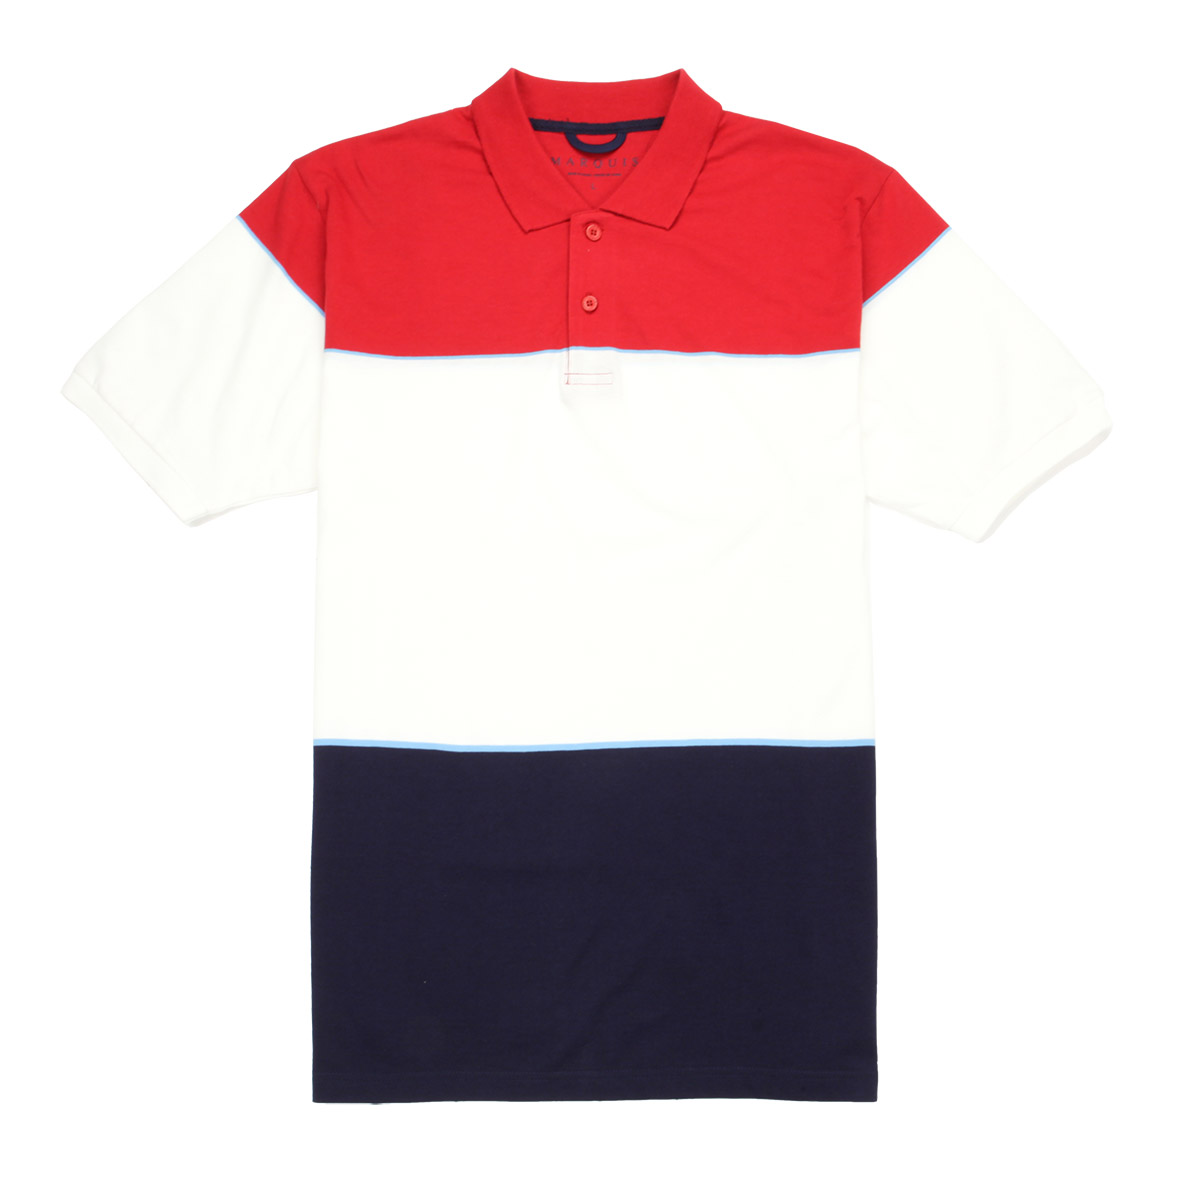 15352 - Red